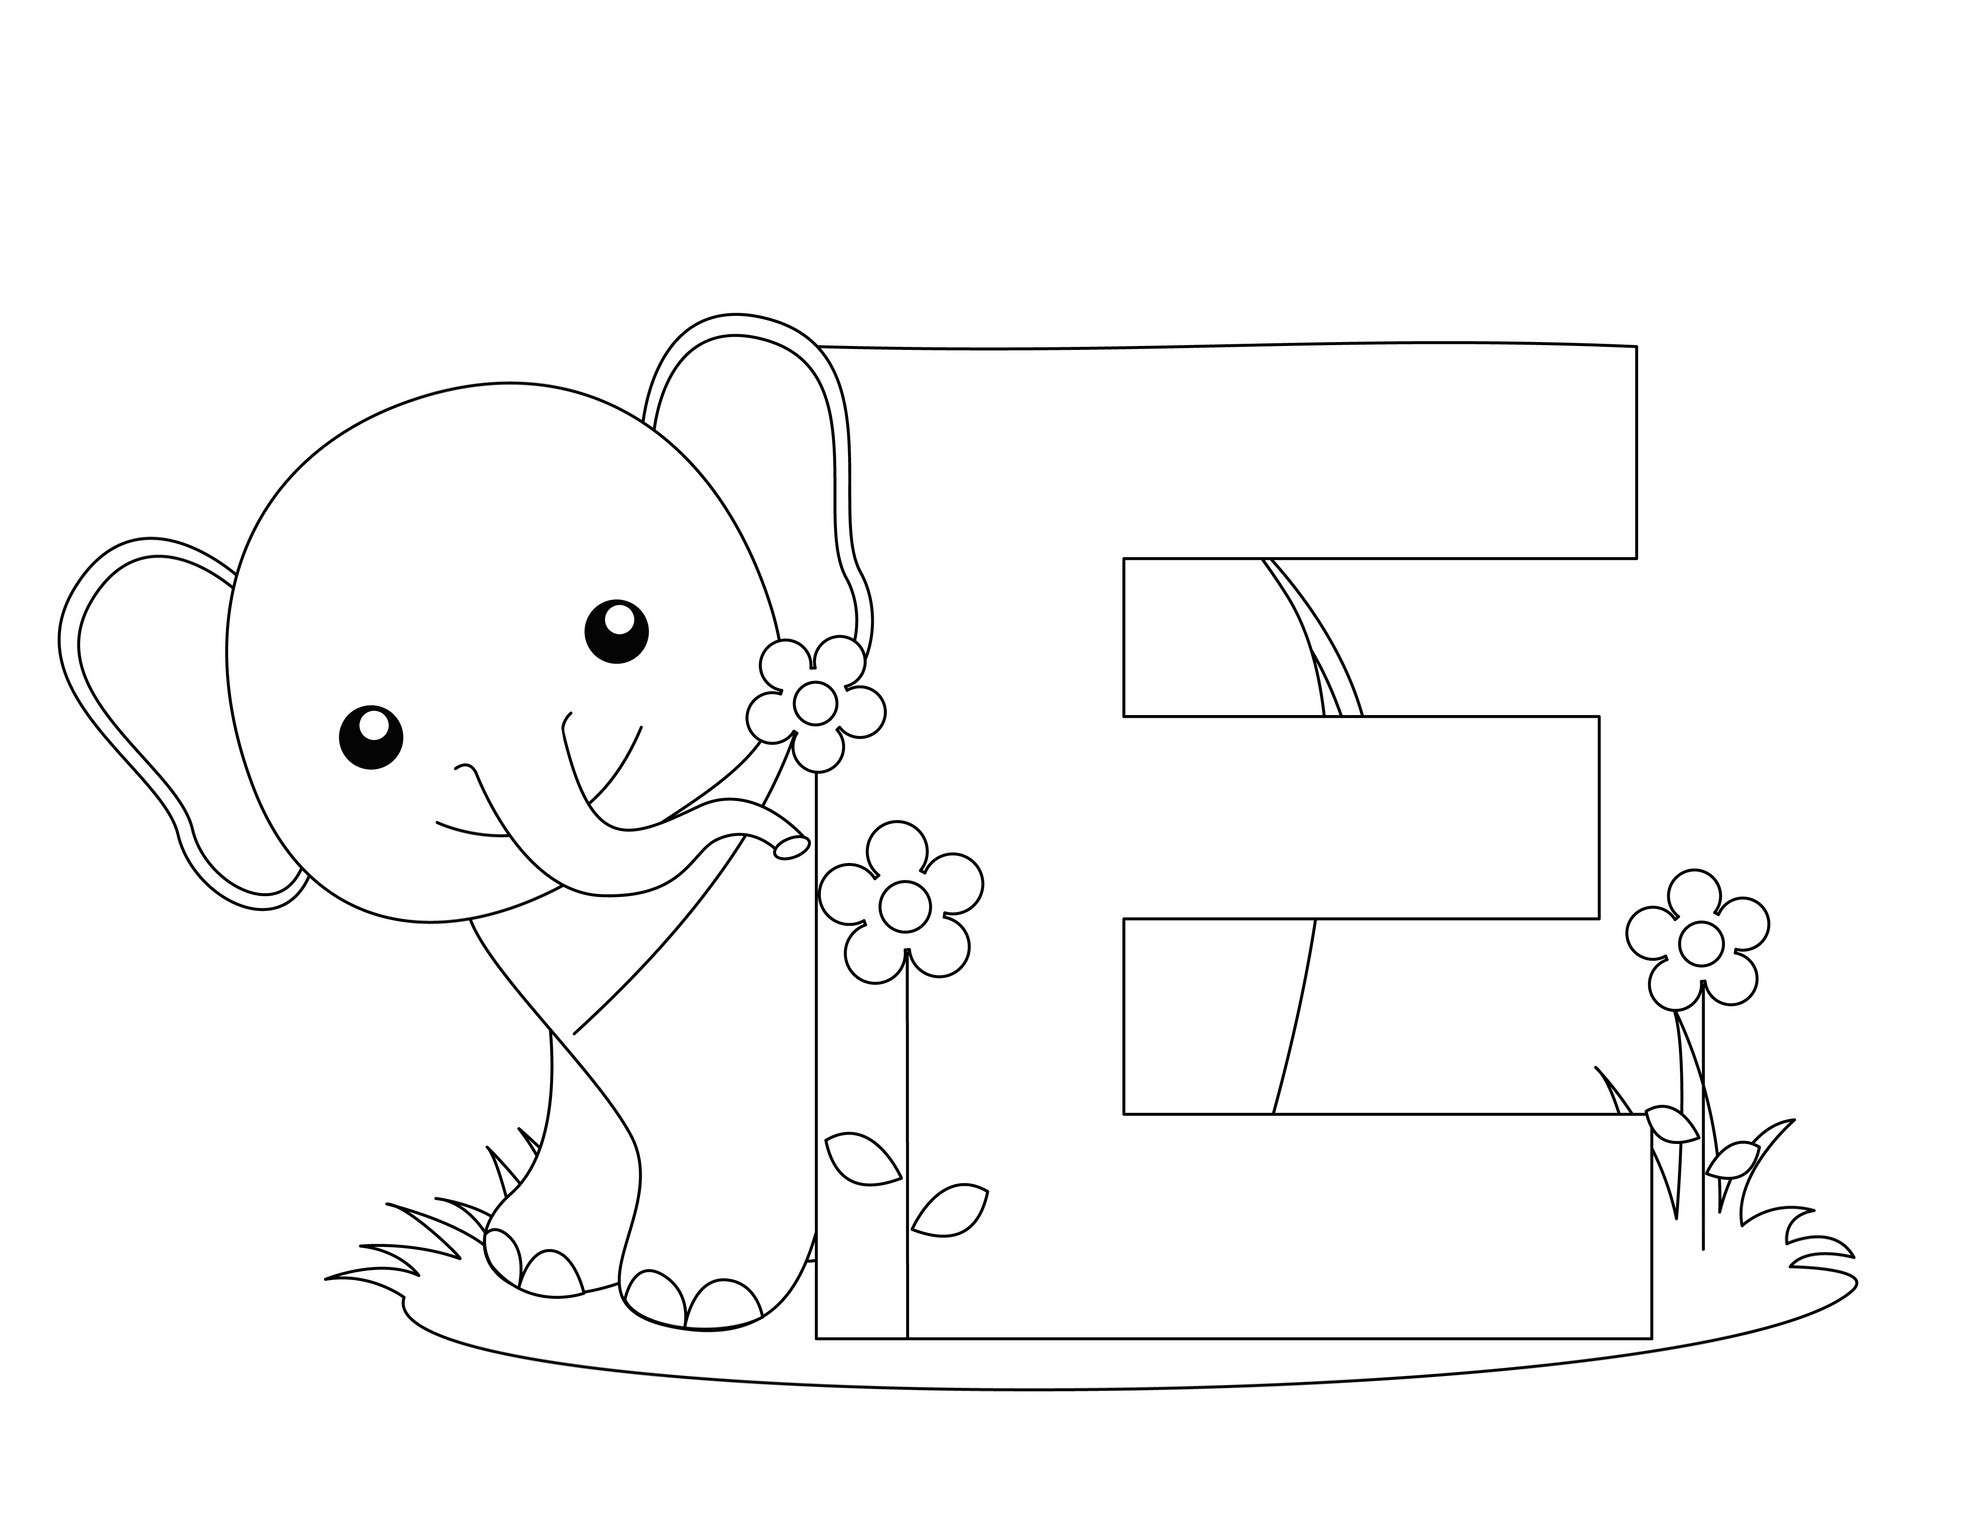 Free Coloring Pages With Alphabet : Free printable alphabet coloring pages for kids best